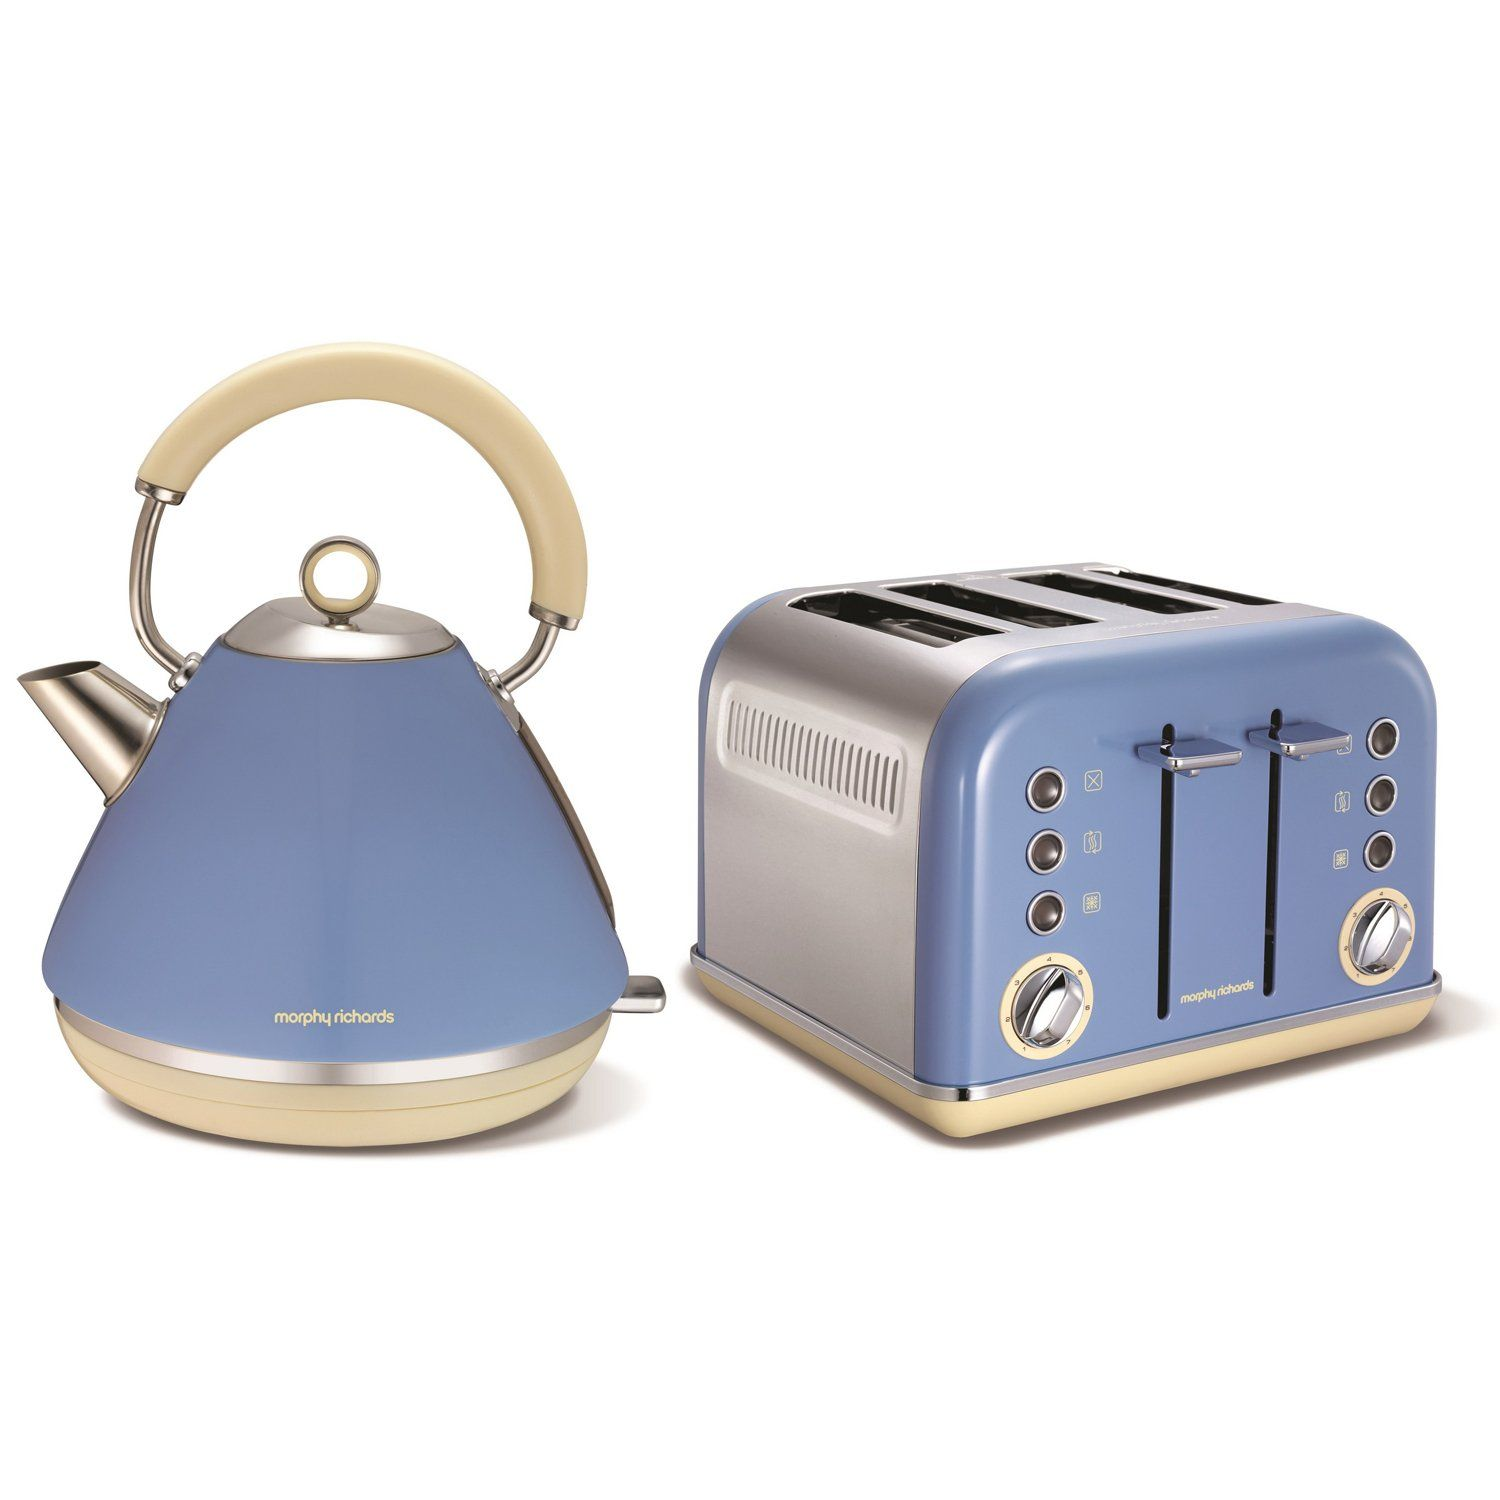 morphy richards accents blue stainless steel kettle jug. Black Bedroom Furniture Sets. Home Design Ideas